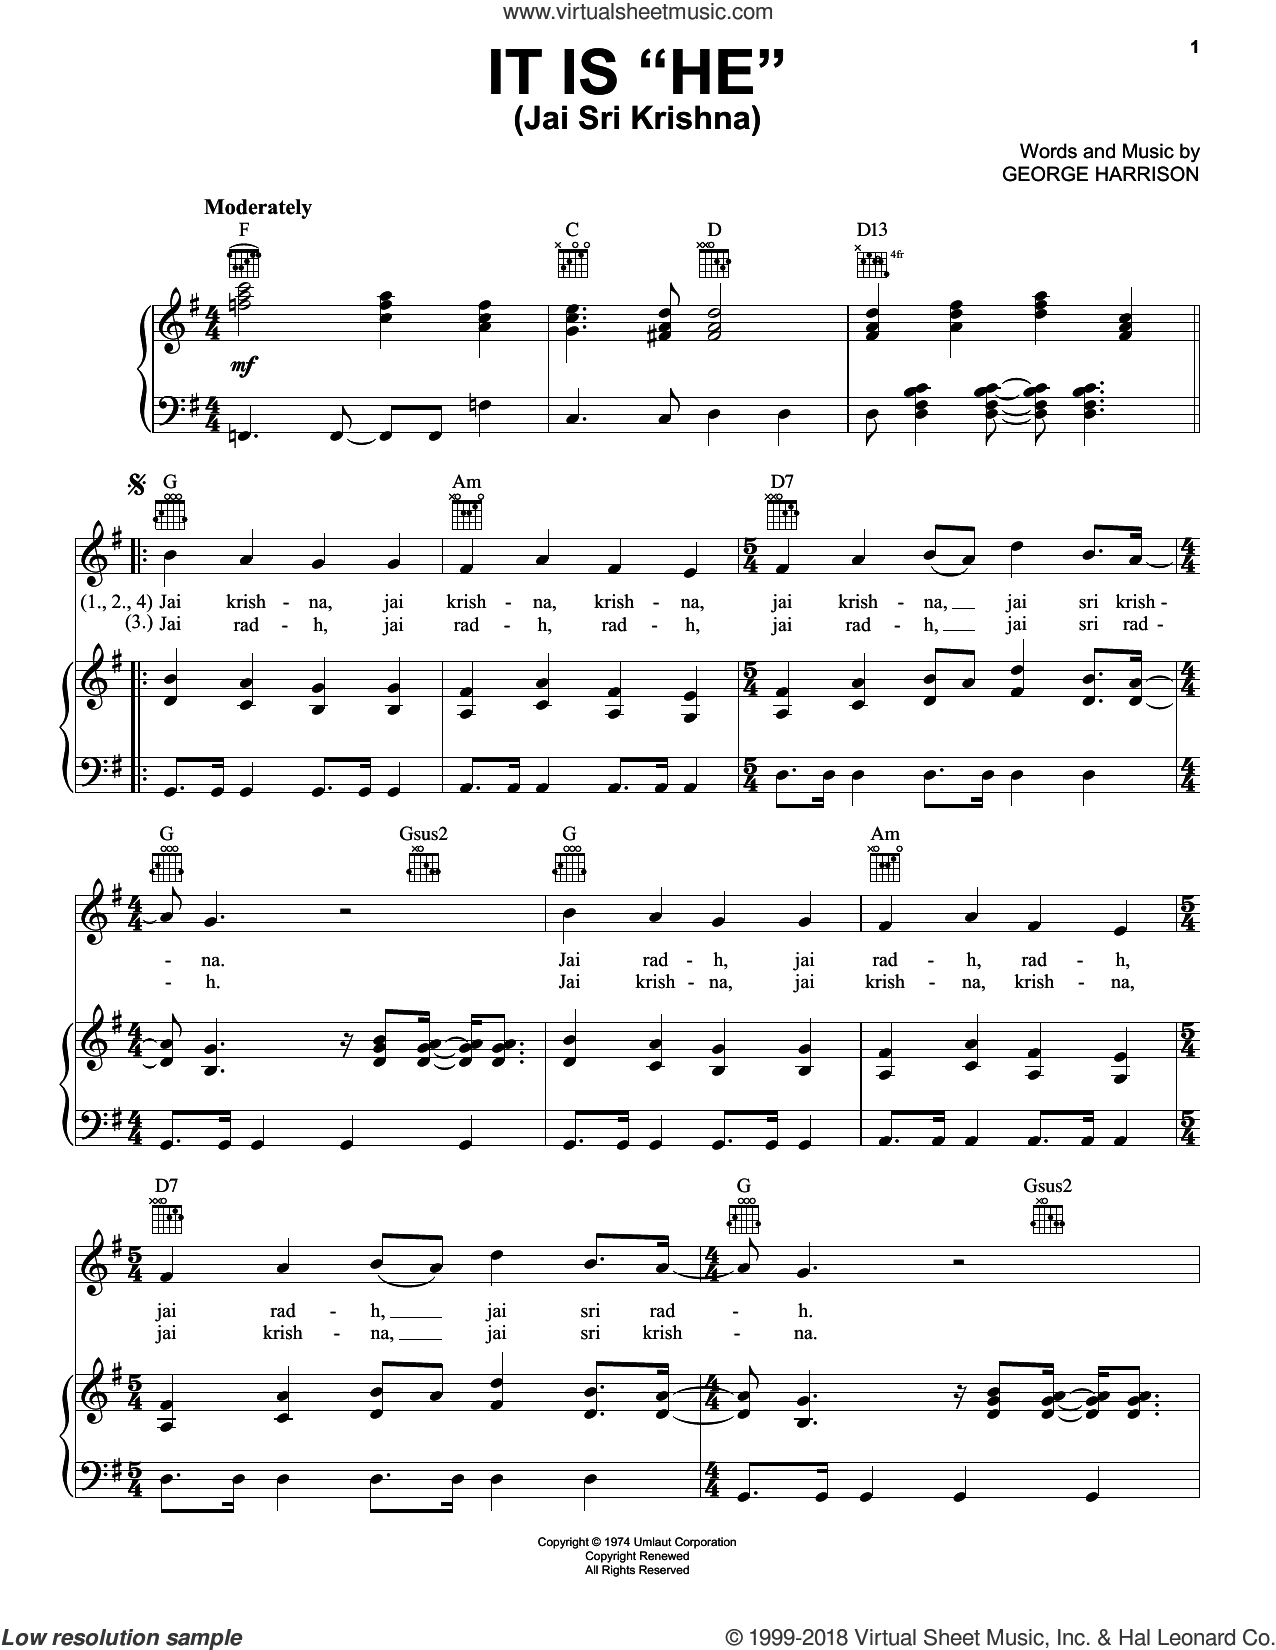 It Is 'He' (Jai Sri Krishna) sheet music for voice, piano or guitar by George Harrison, intermediate skill level